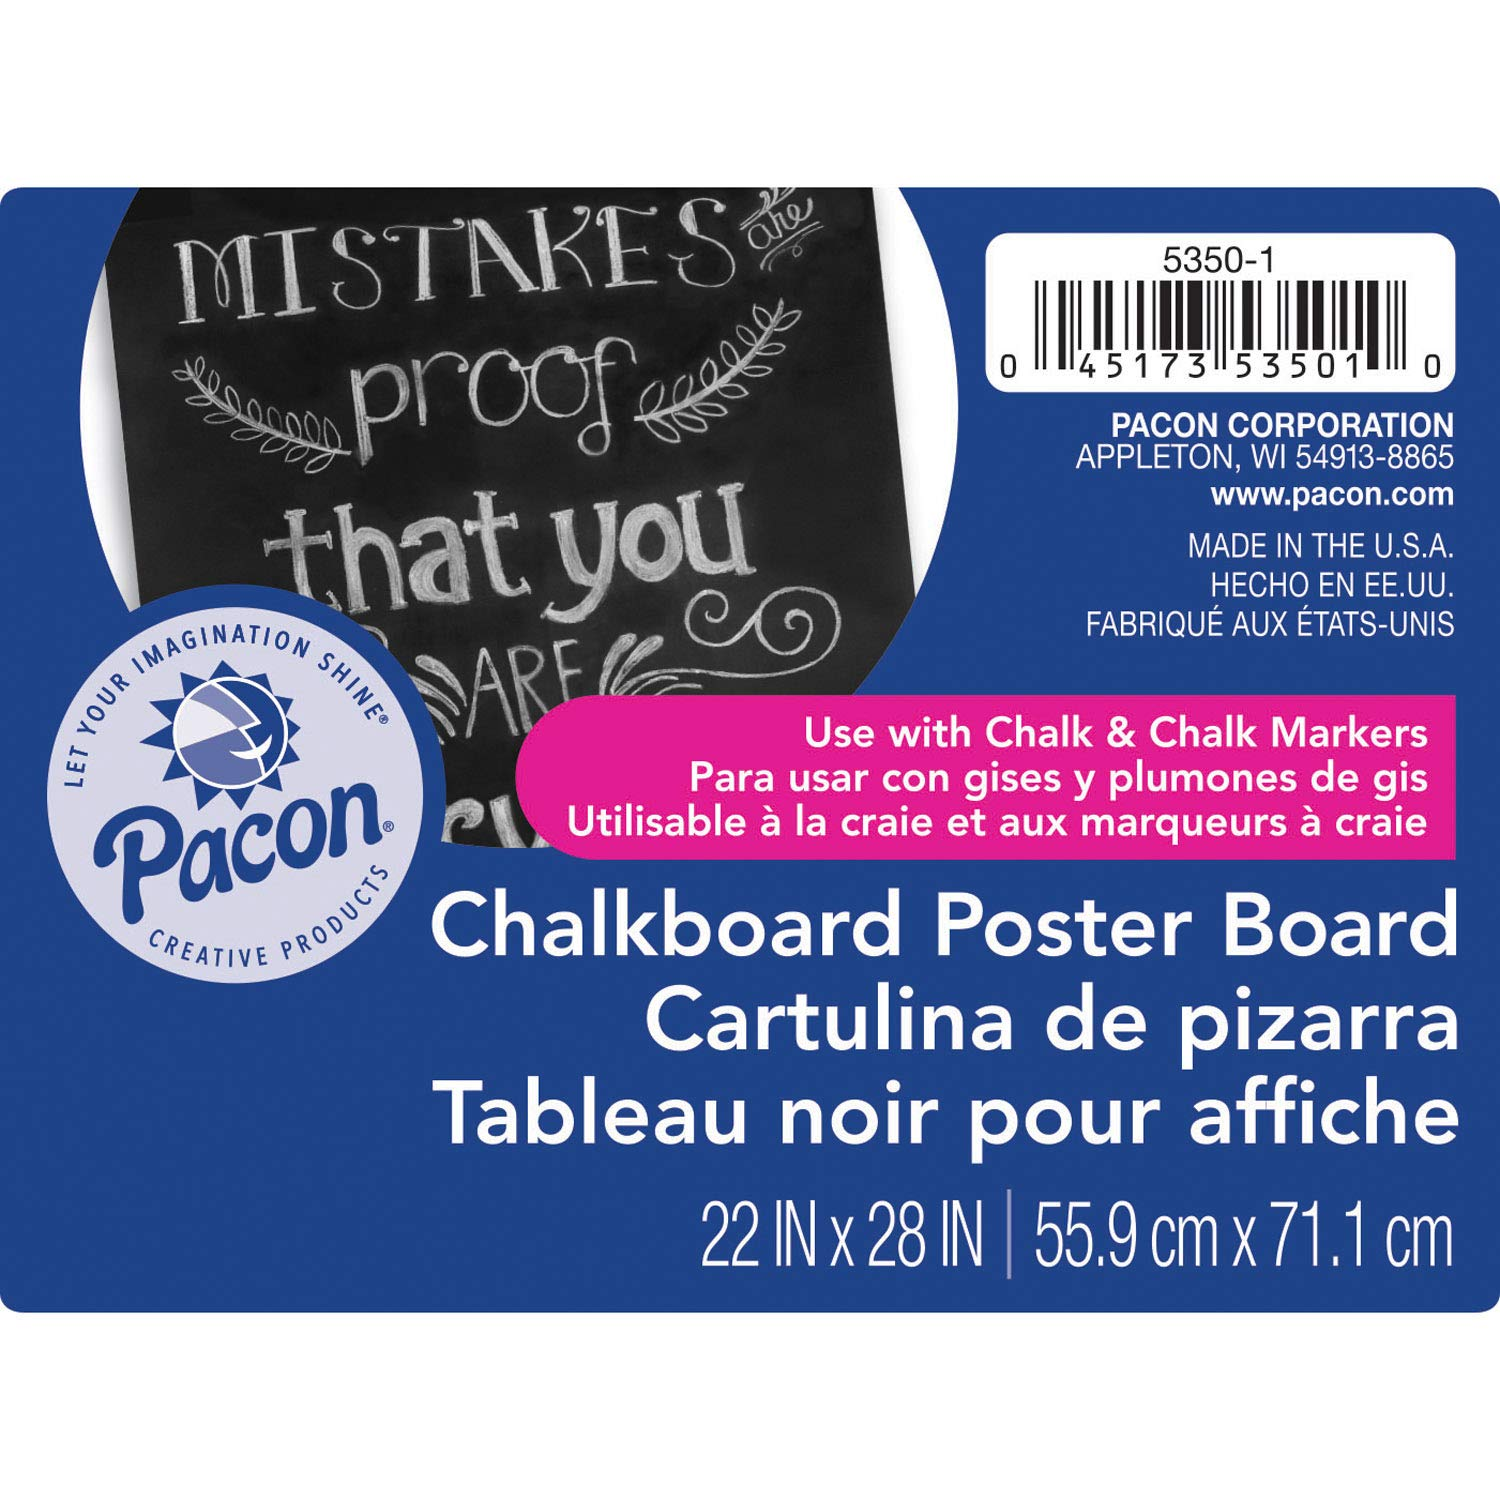 Pacon PAC53501 Premium Chalkboard Poster Board, Black, 22'' x 28'', 25 Sheets by PACON